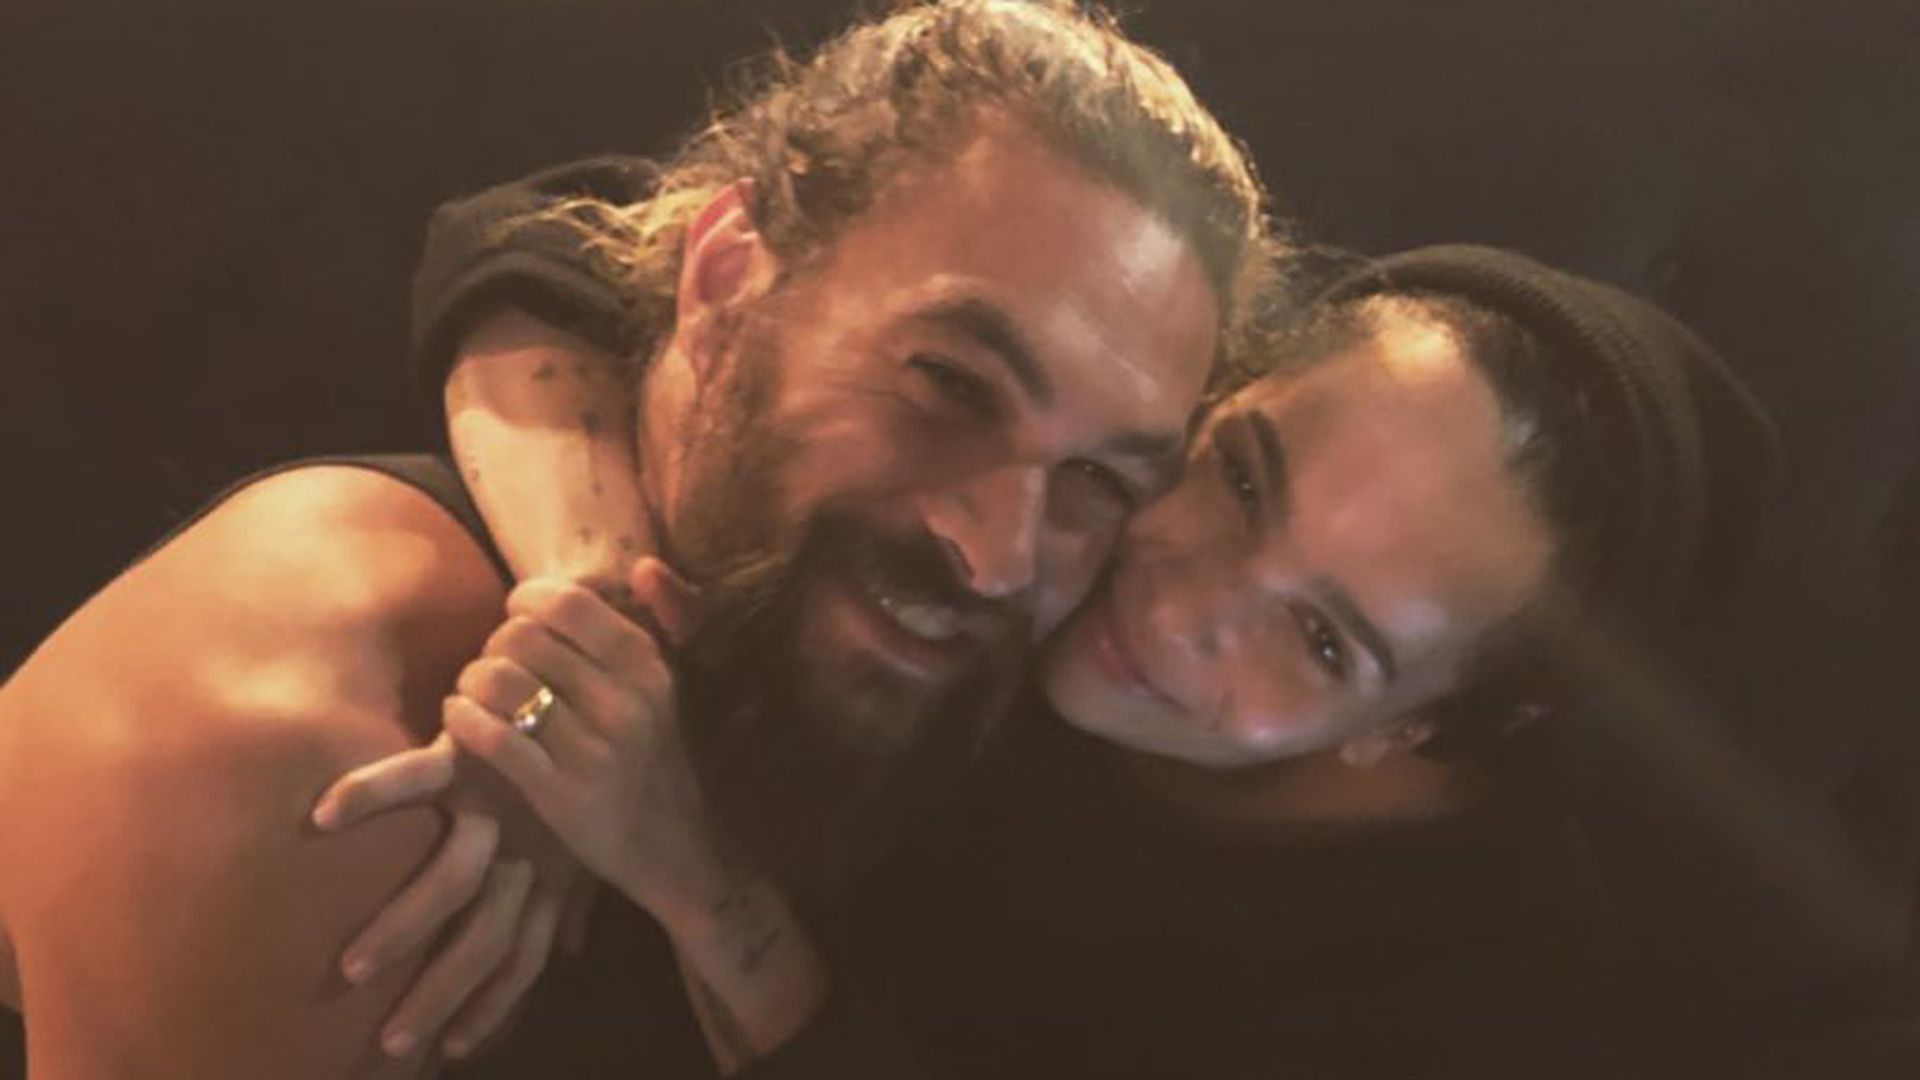 https://content2.promiflash.de/article-images/video_1080/jason-momoa-und-zoe-kravitz-arm-in-arm.jpg